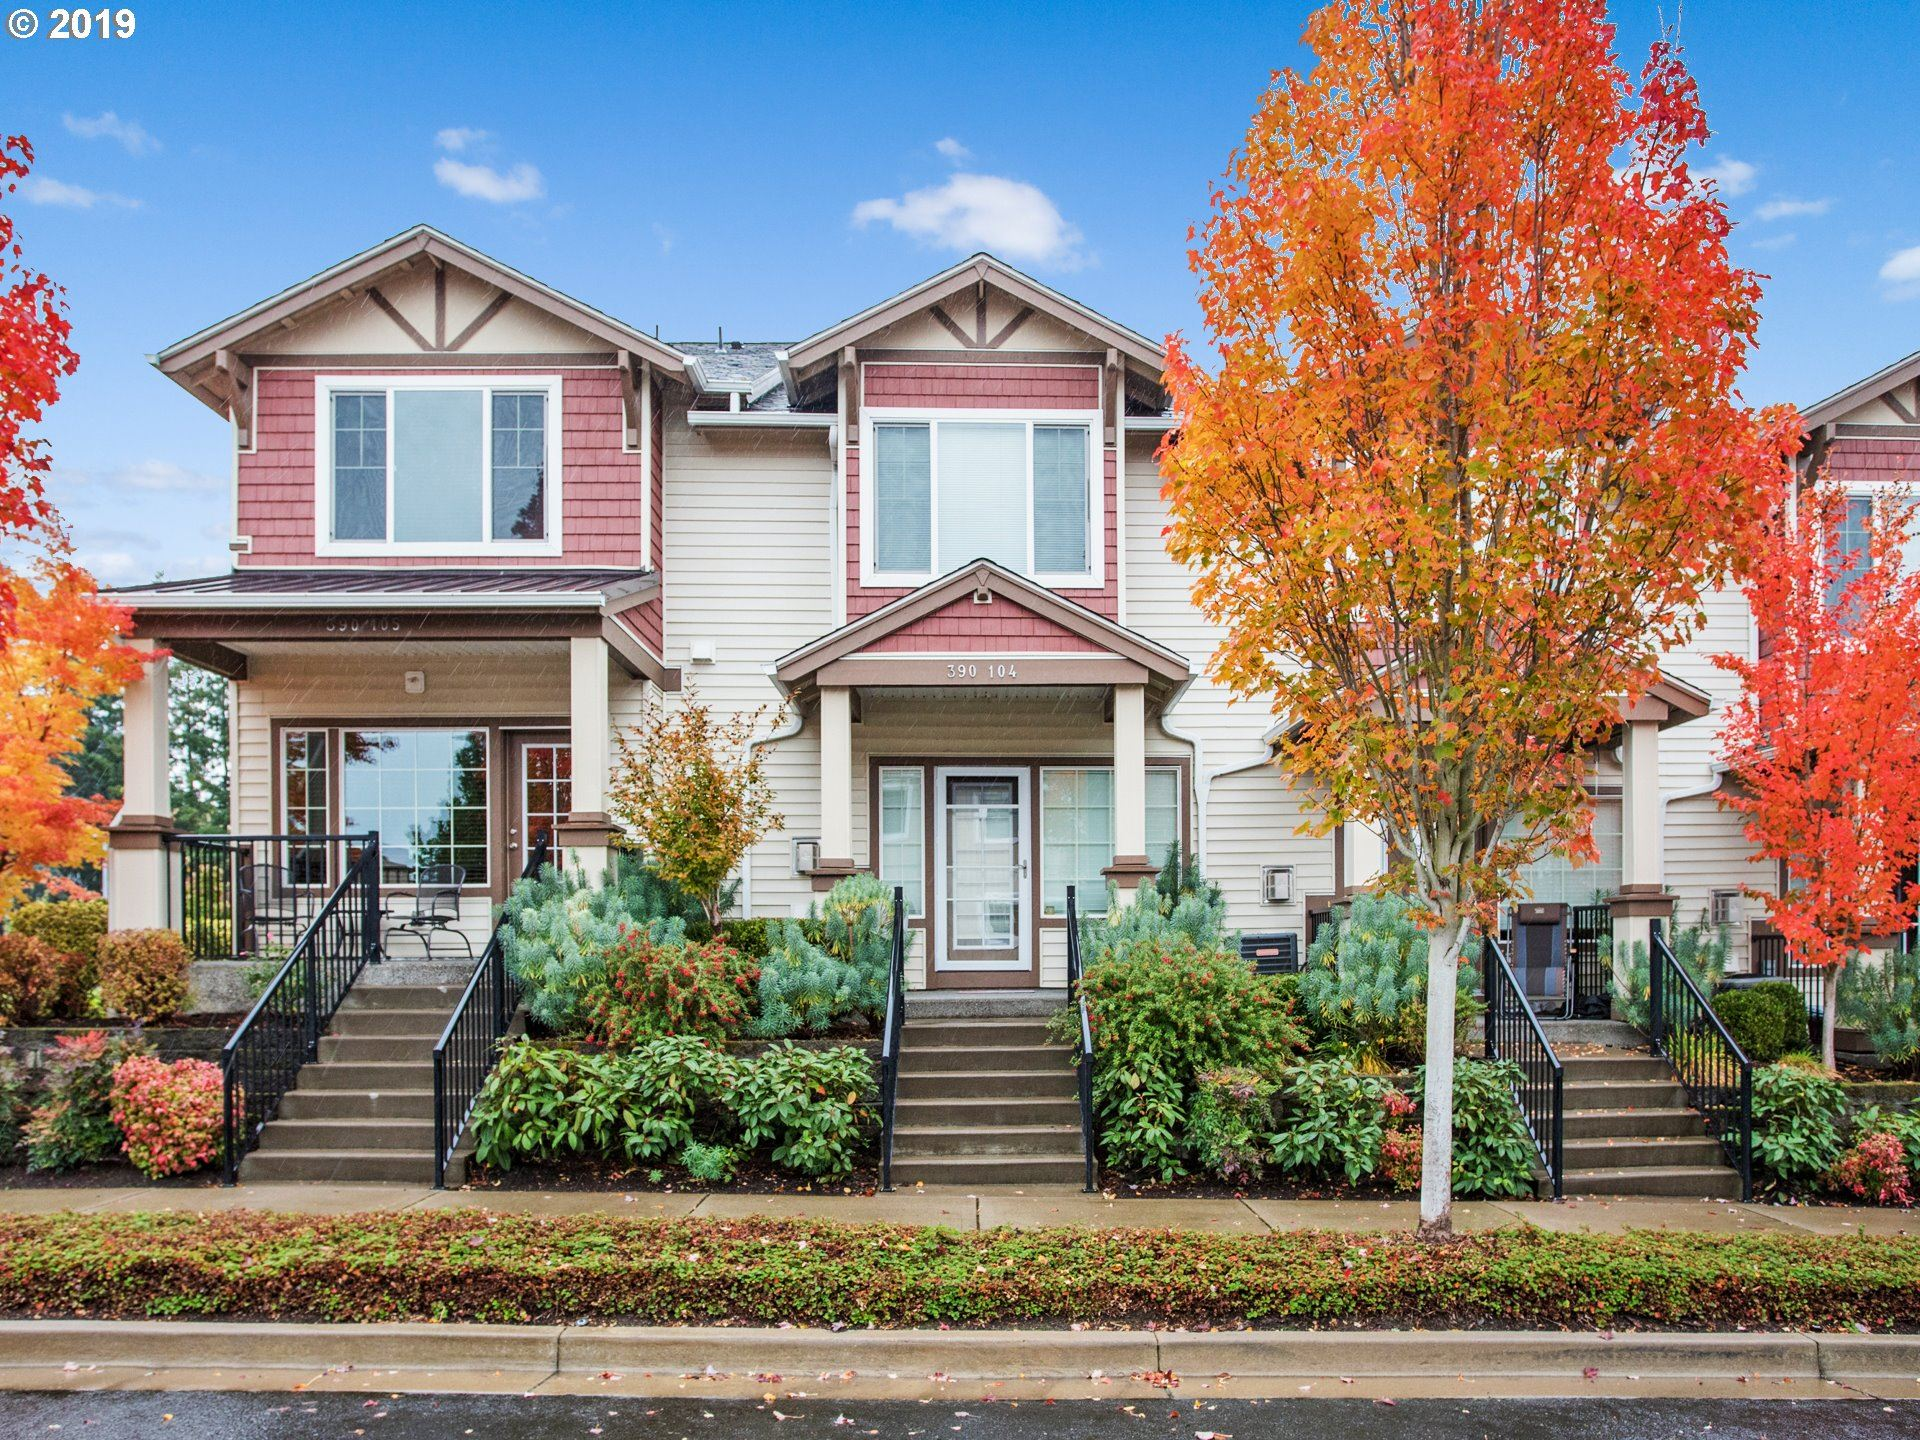 390 NW 116TH AVE #104, Portland, OR 97229 - MLS#: 19294050